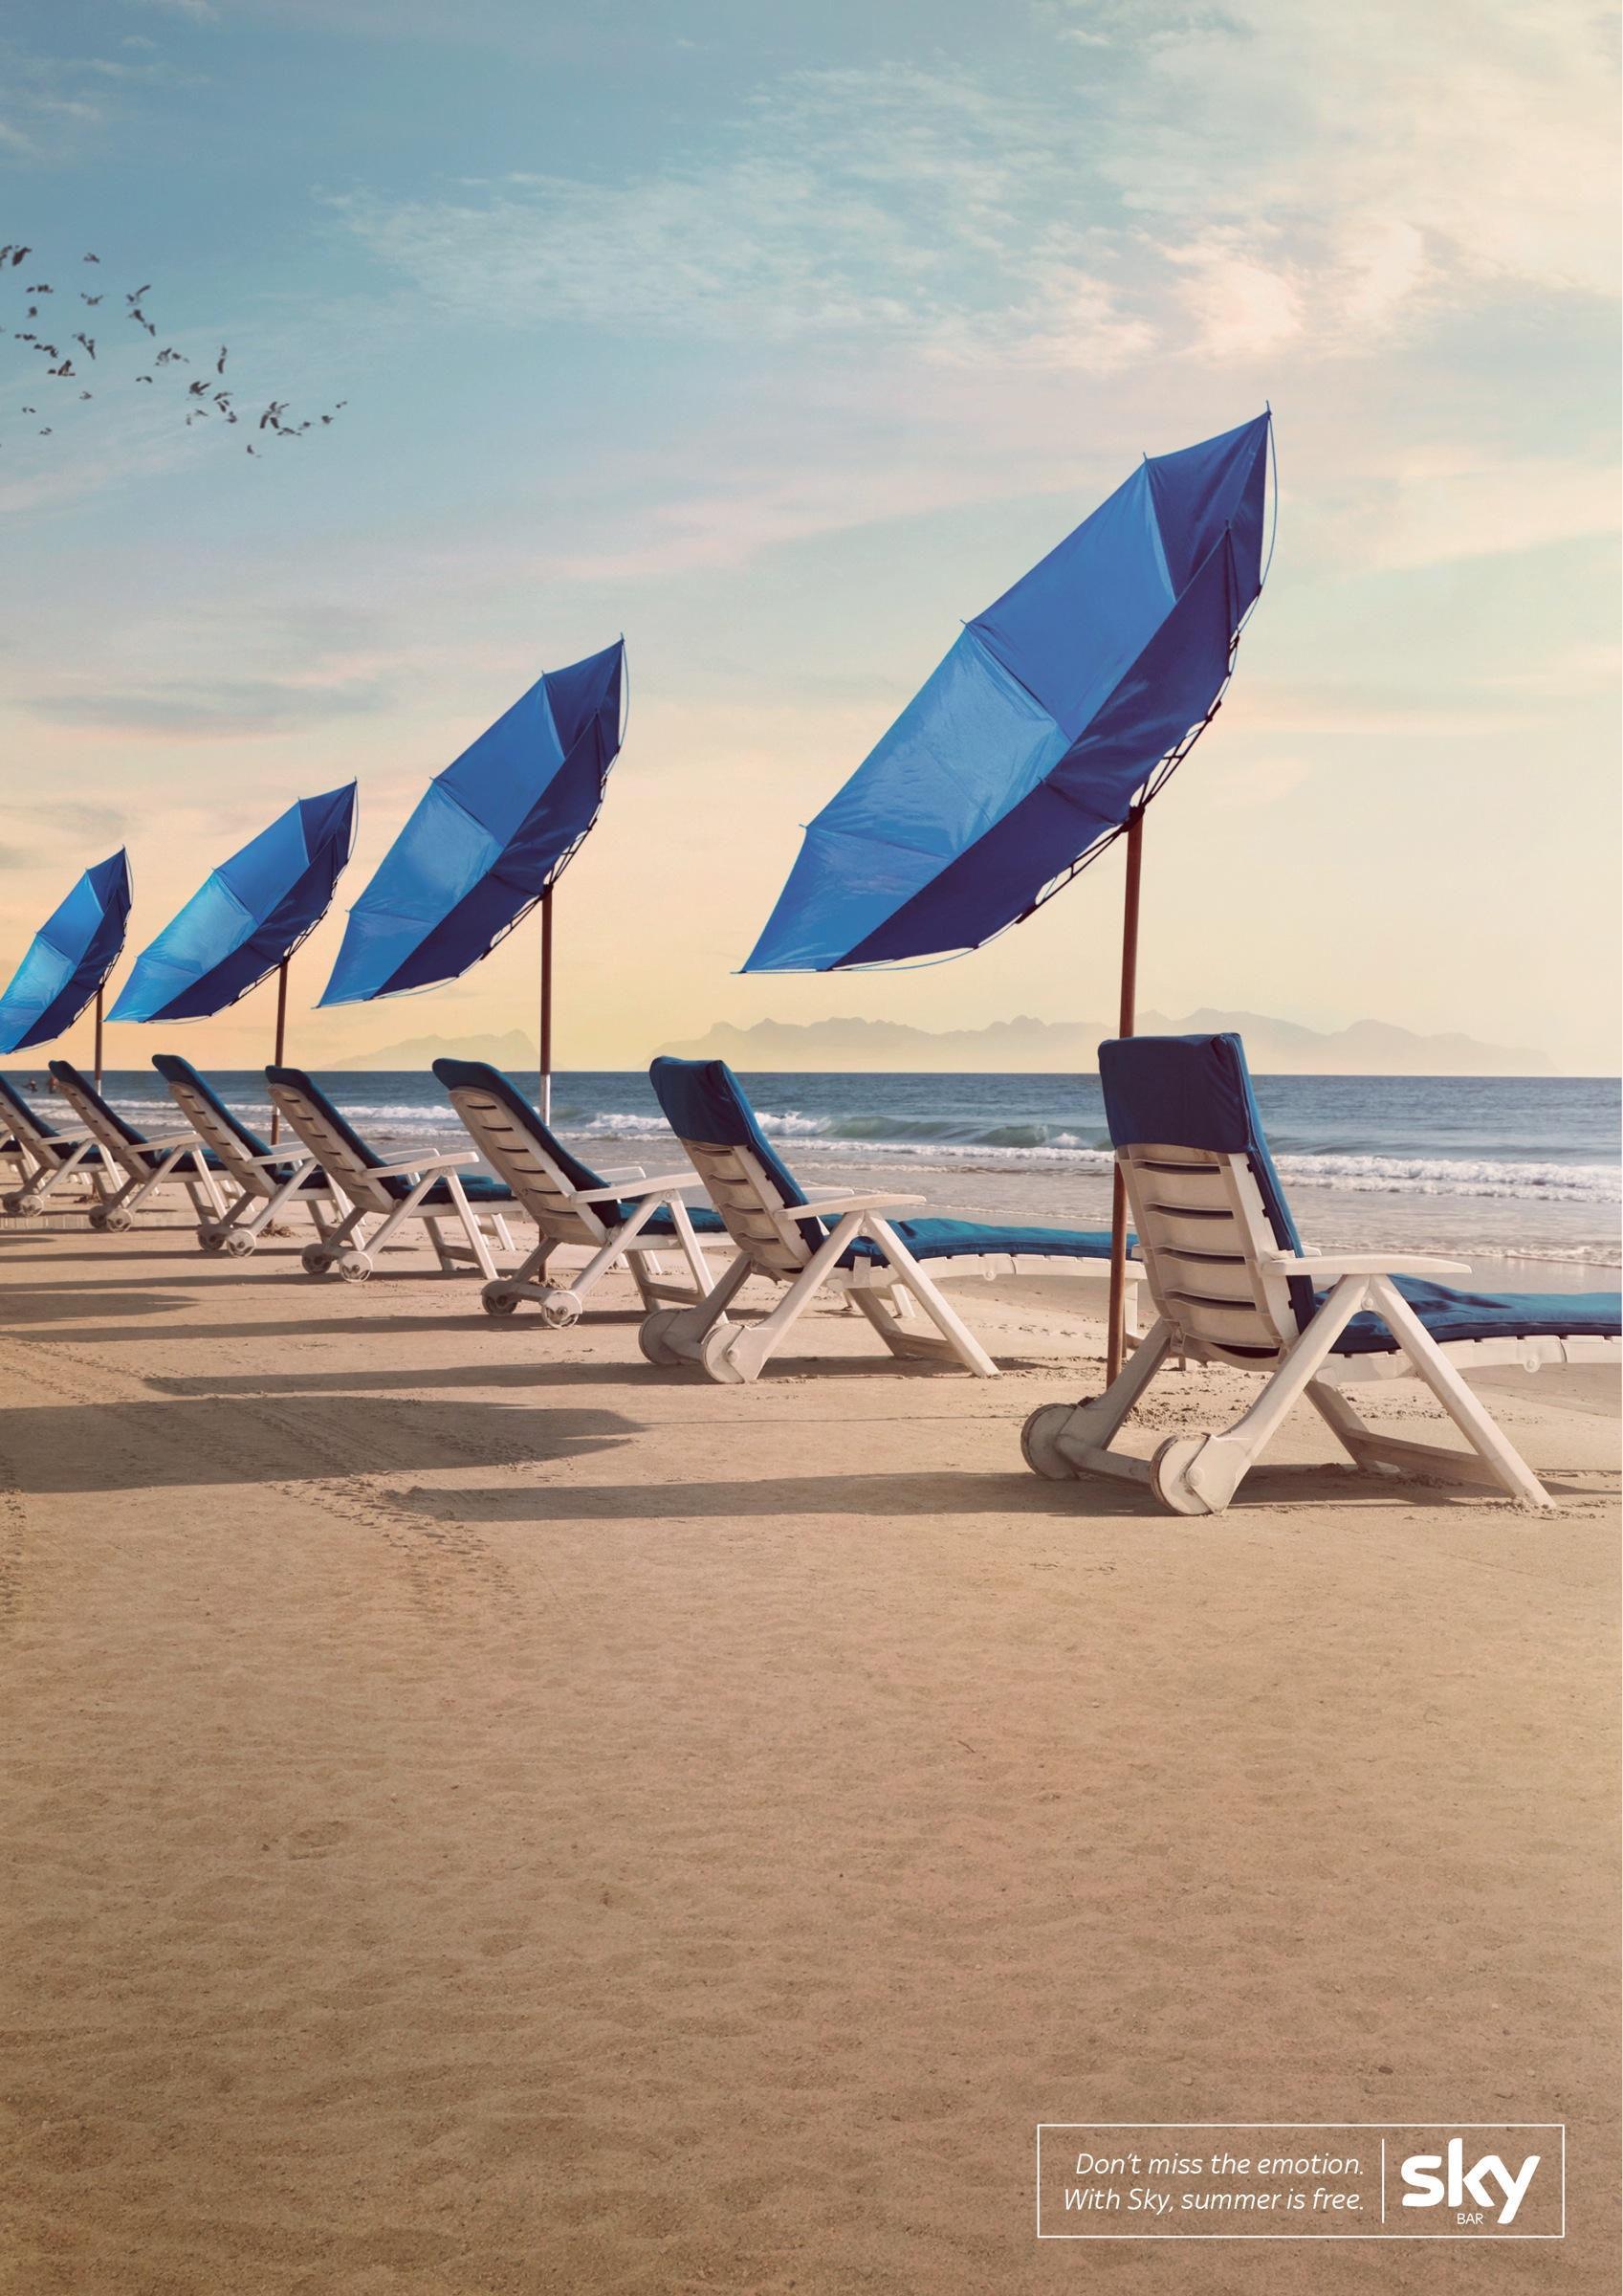 SKY Print Ad -  Beach umbrellas